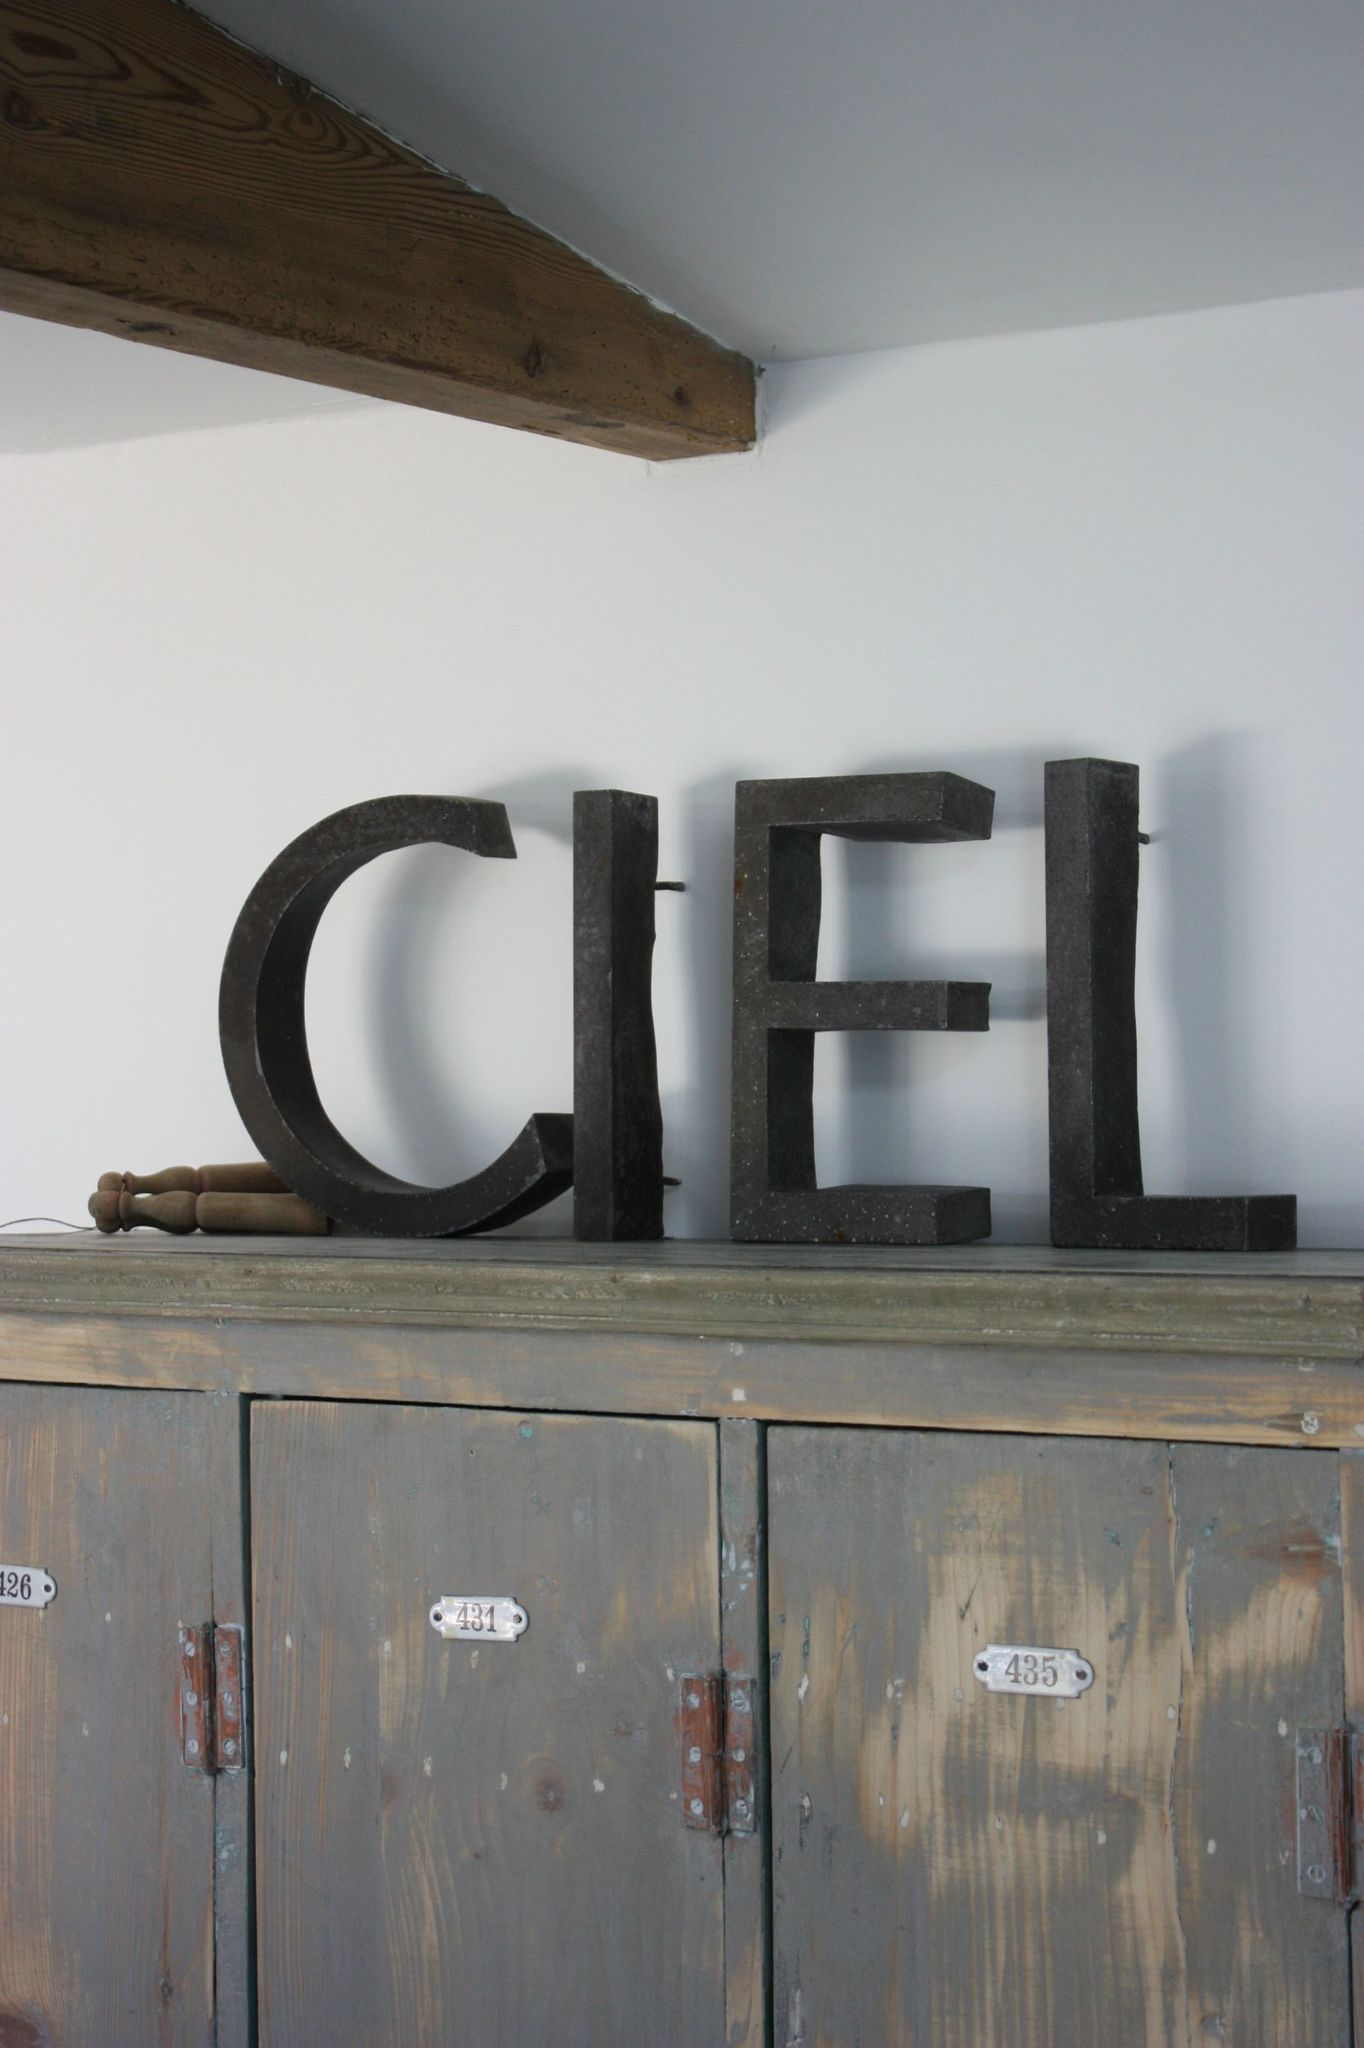 Bring French To Your Decor With Vintage Letters This One Ciel Is Sky In English Le Grenier De Ninon Deco Noir Et Blanc Meuble De Metier